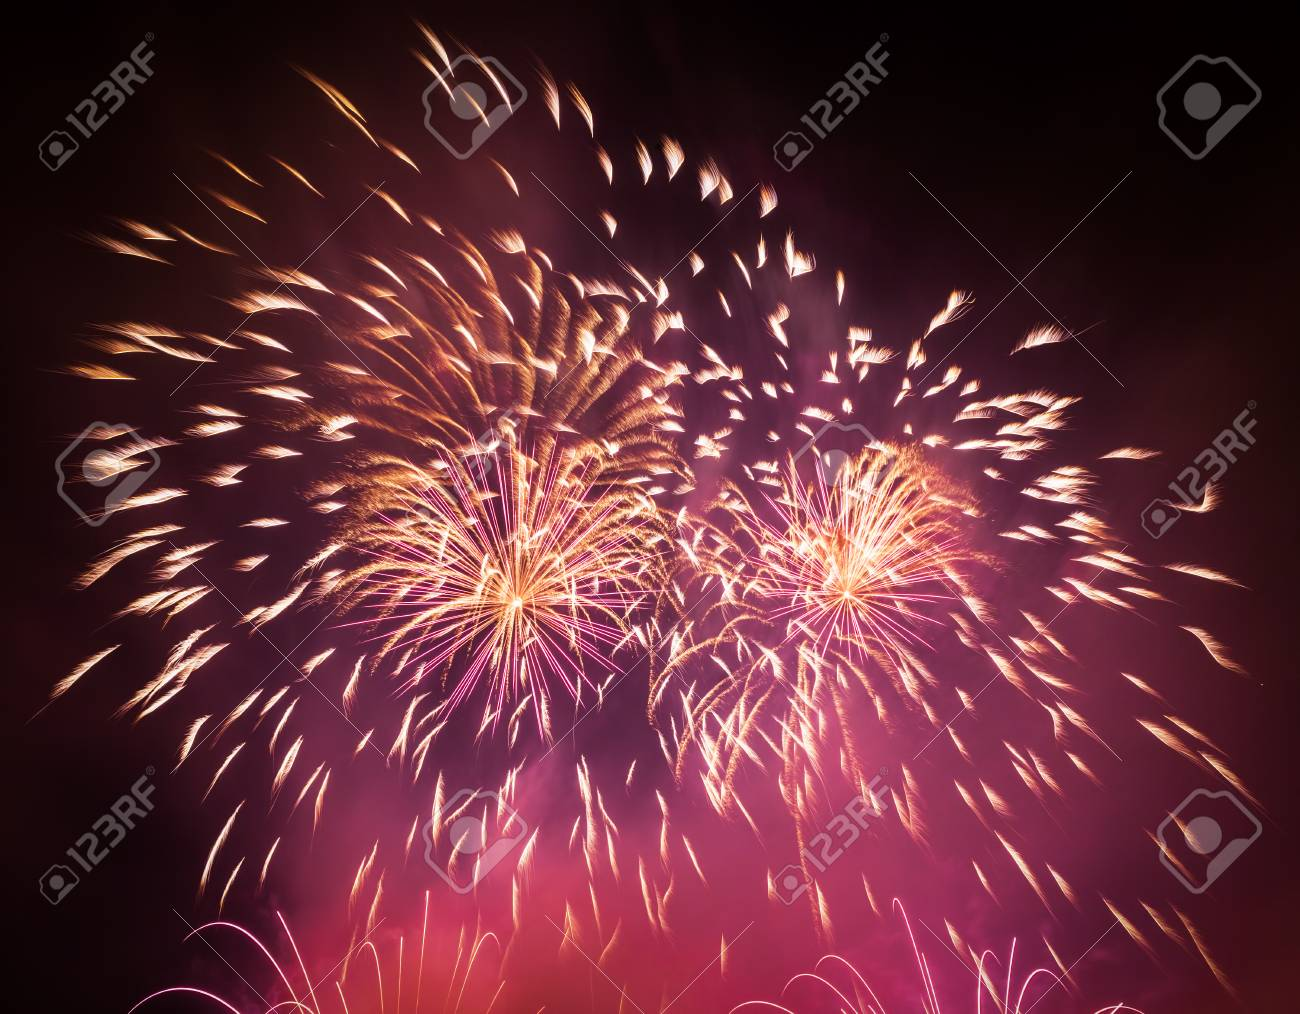 spectacular fireworks show light up the sky new year celebration background stock photo 63775249